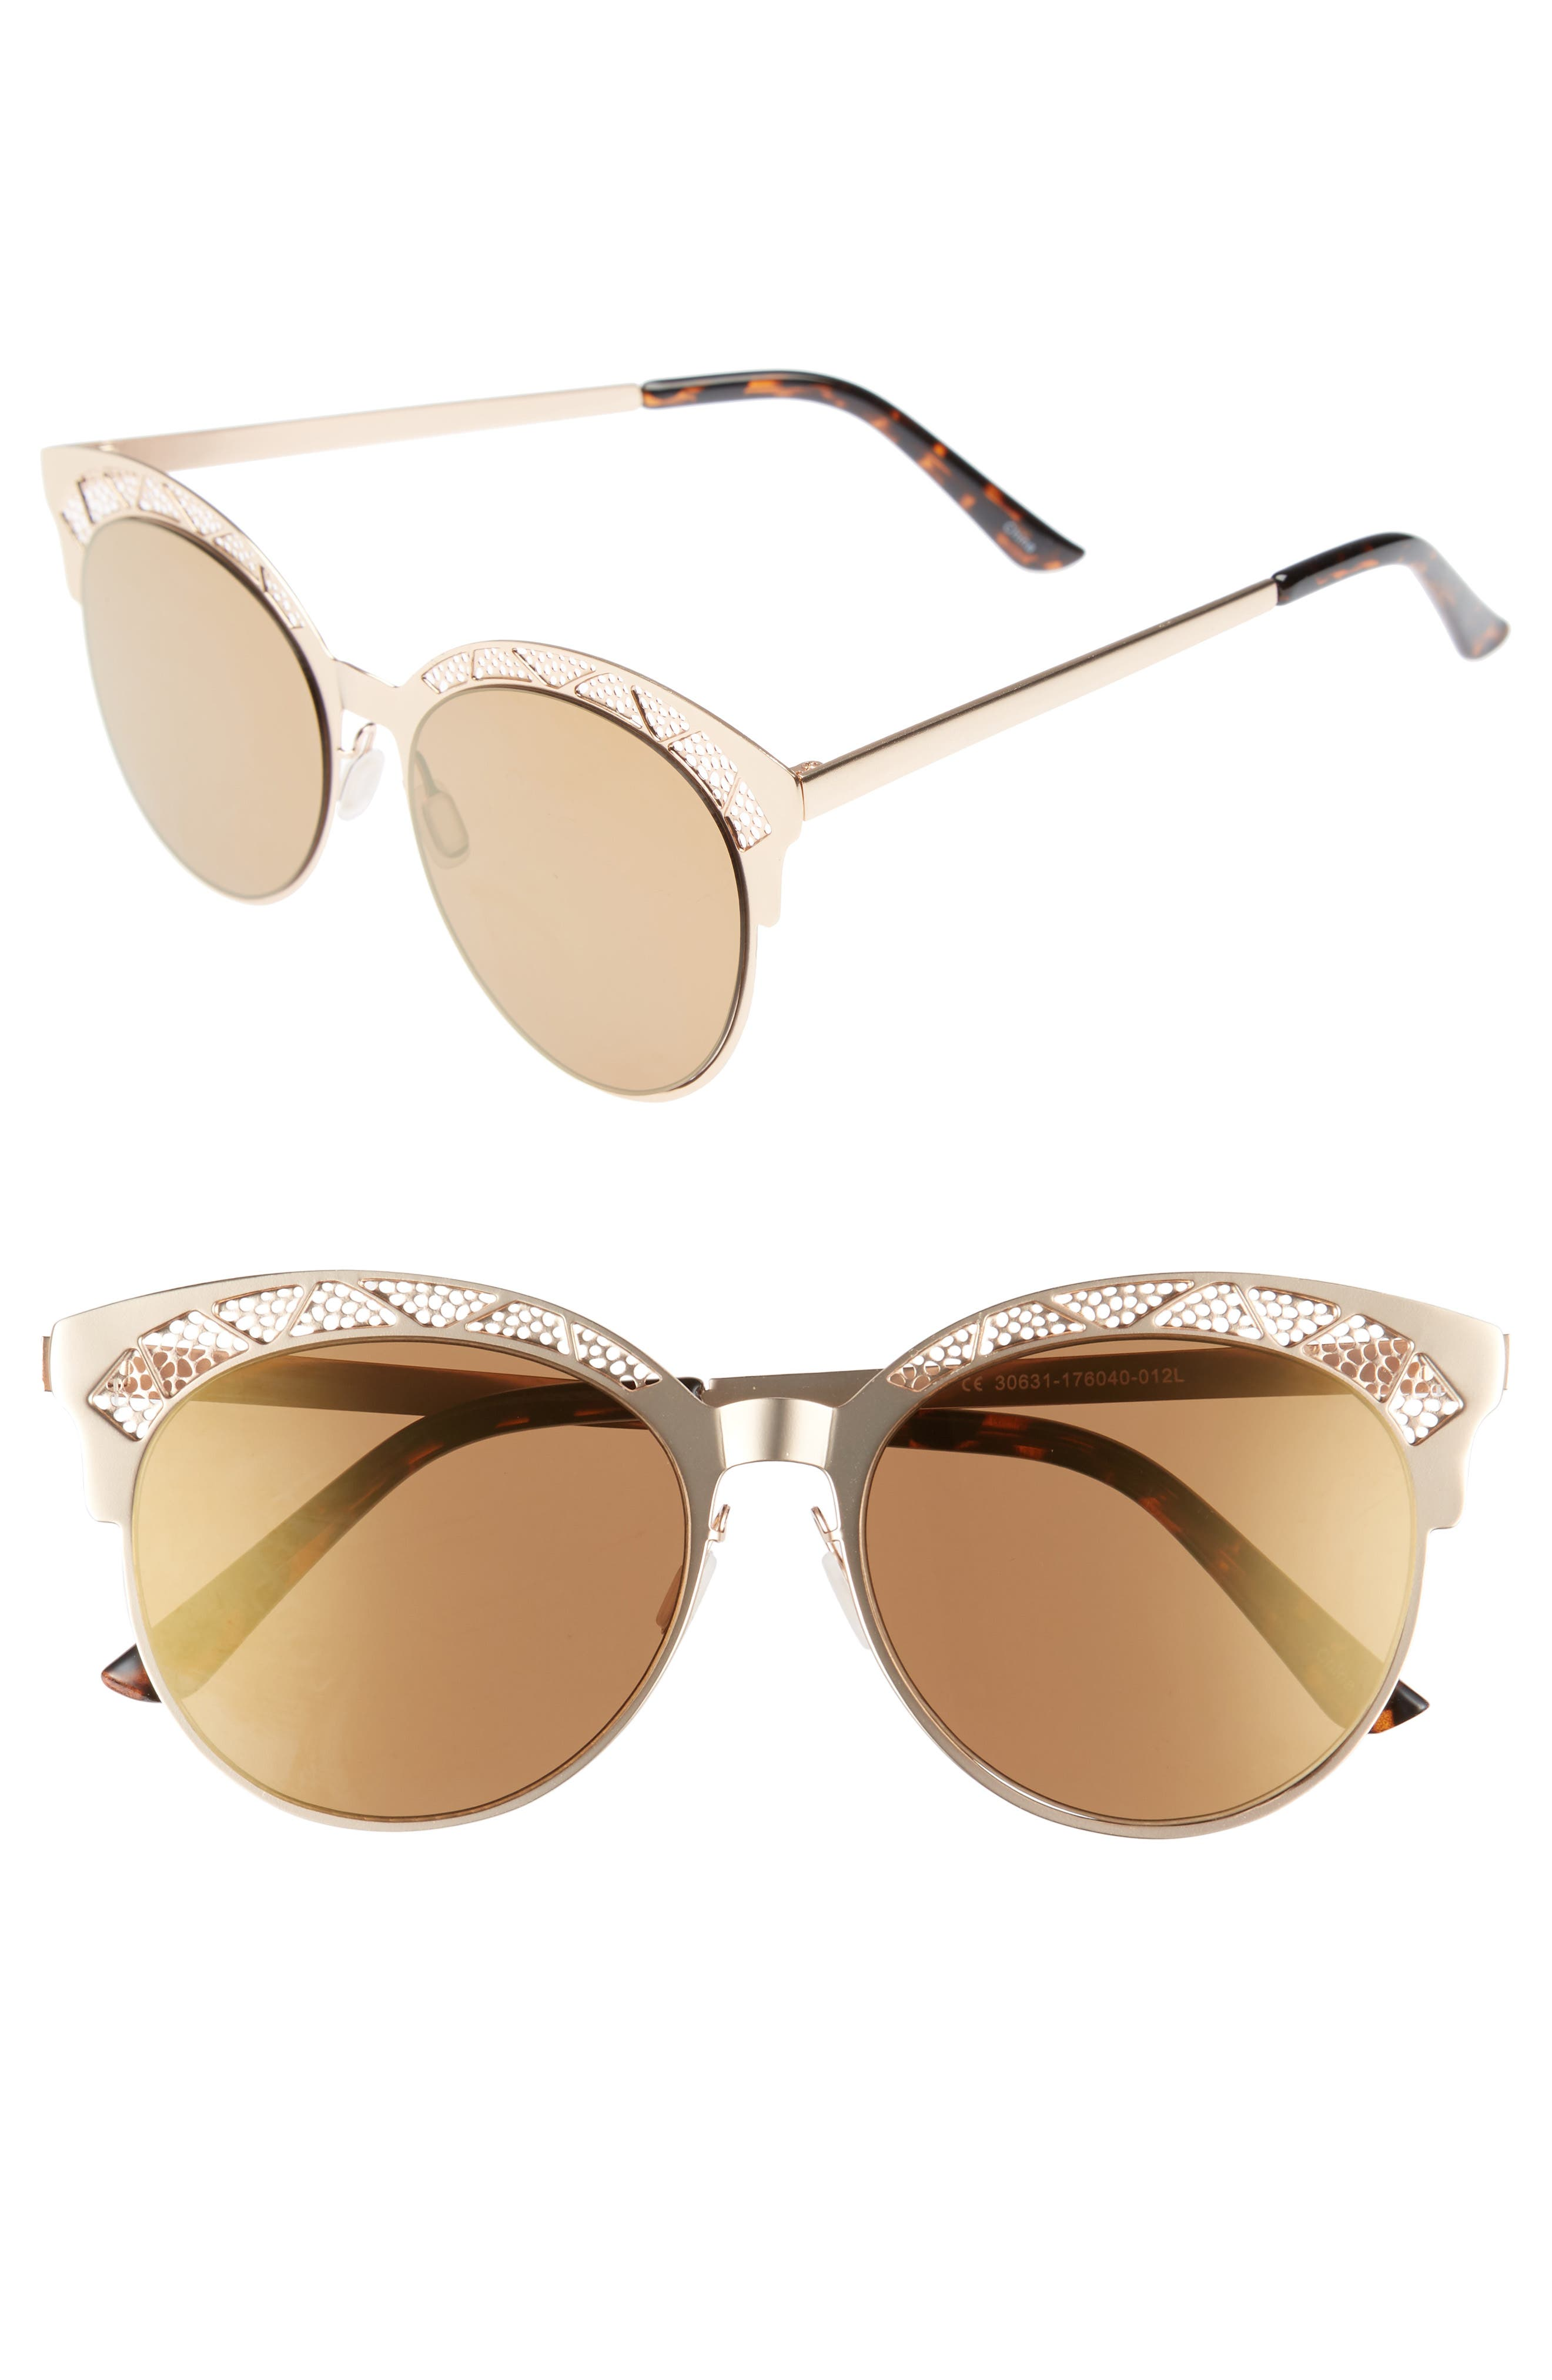 Alternate Image 1 Selected - BP. 56mm Round Sunglasses